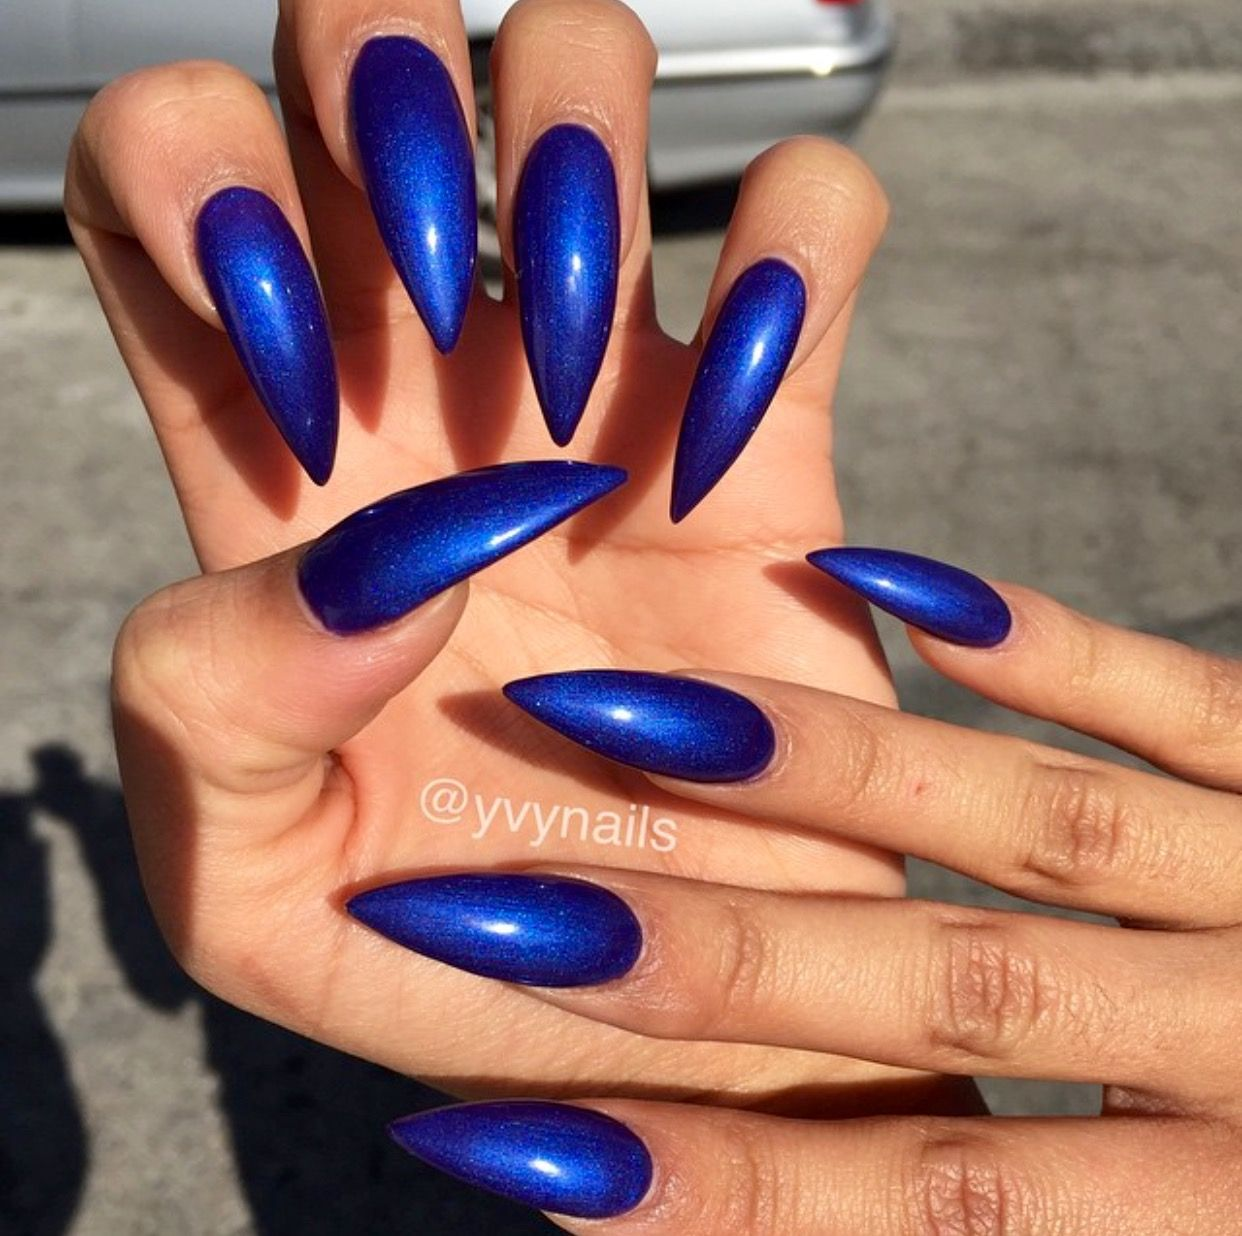 Pin By Amber Ford On Nails Blue Stiletto Nails Blue Shellac Nails Vibrant Nails